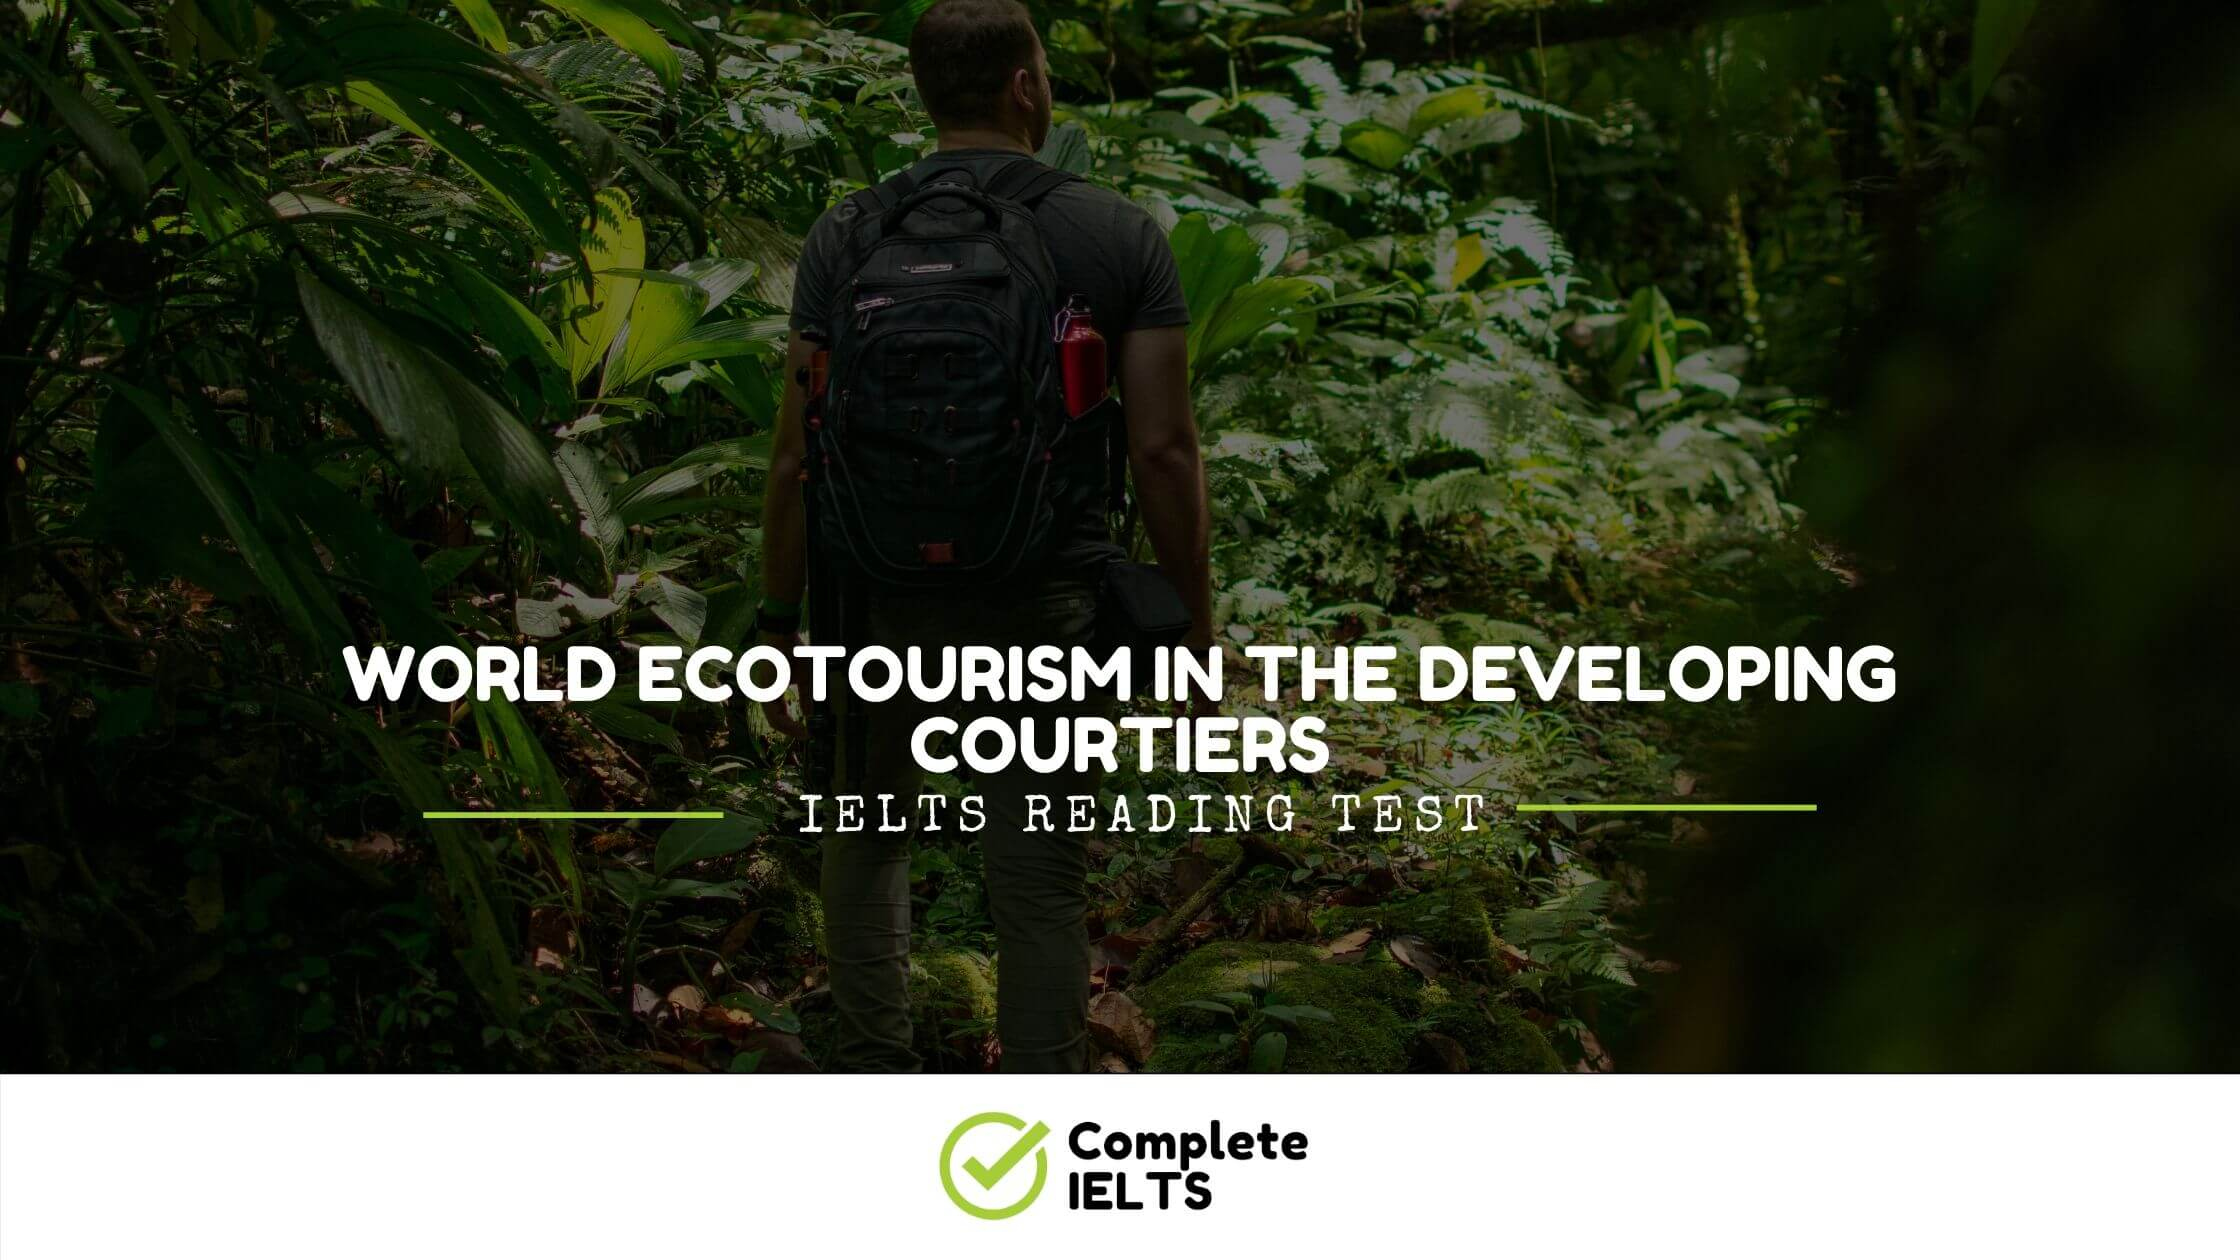 World Ecotourism in the developing courtiers  | IELTS Academic Reading Sample Question